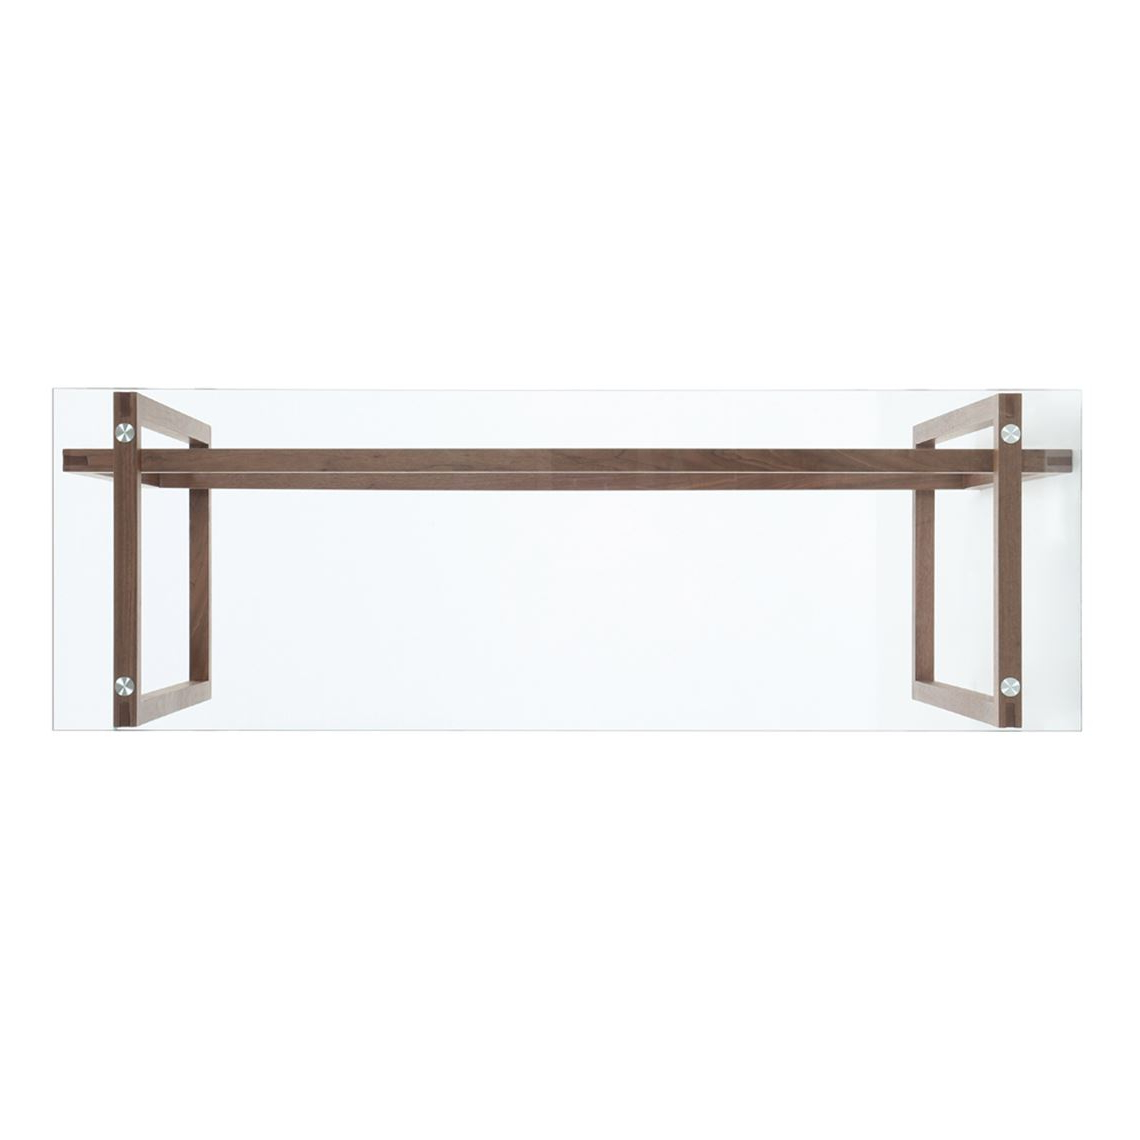 Freedom For Widely Used Kyra Console Tables (View 7 of 20)